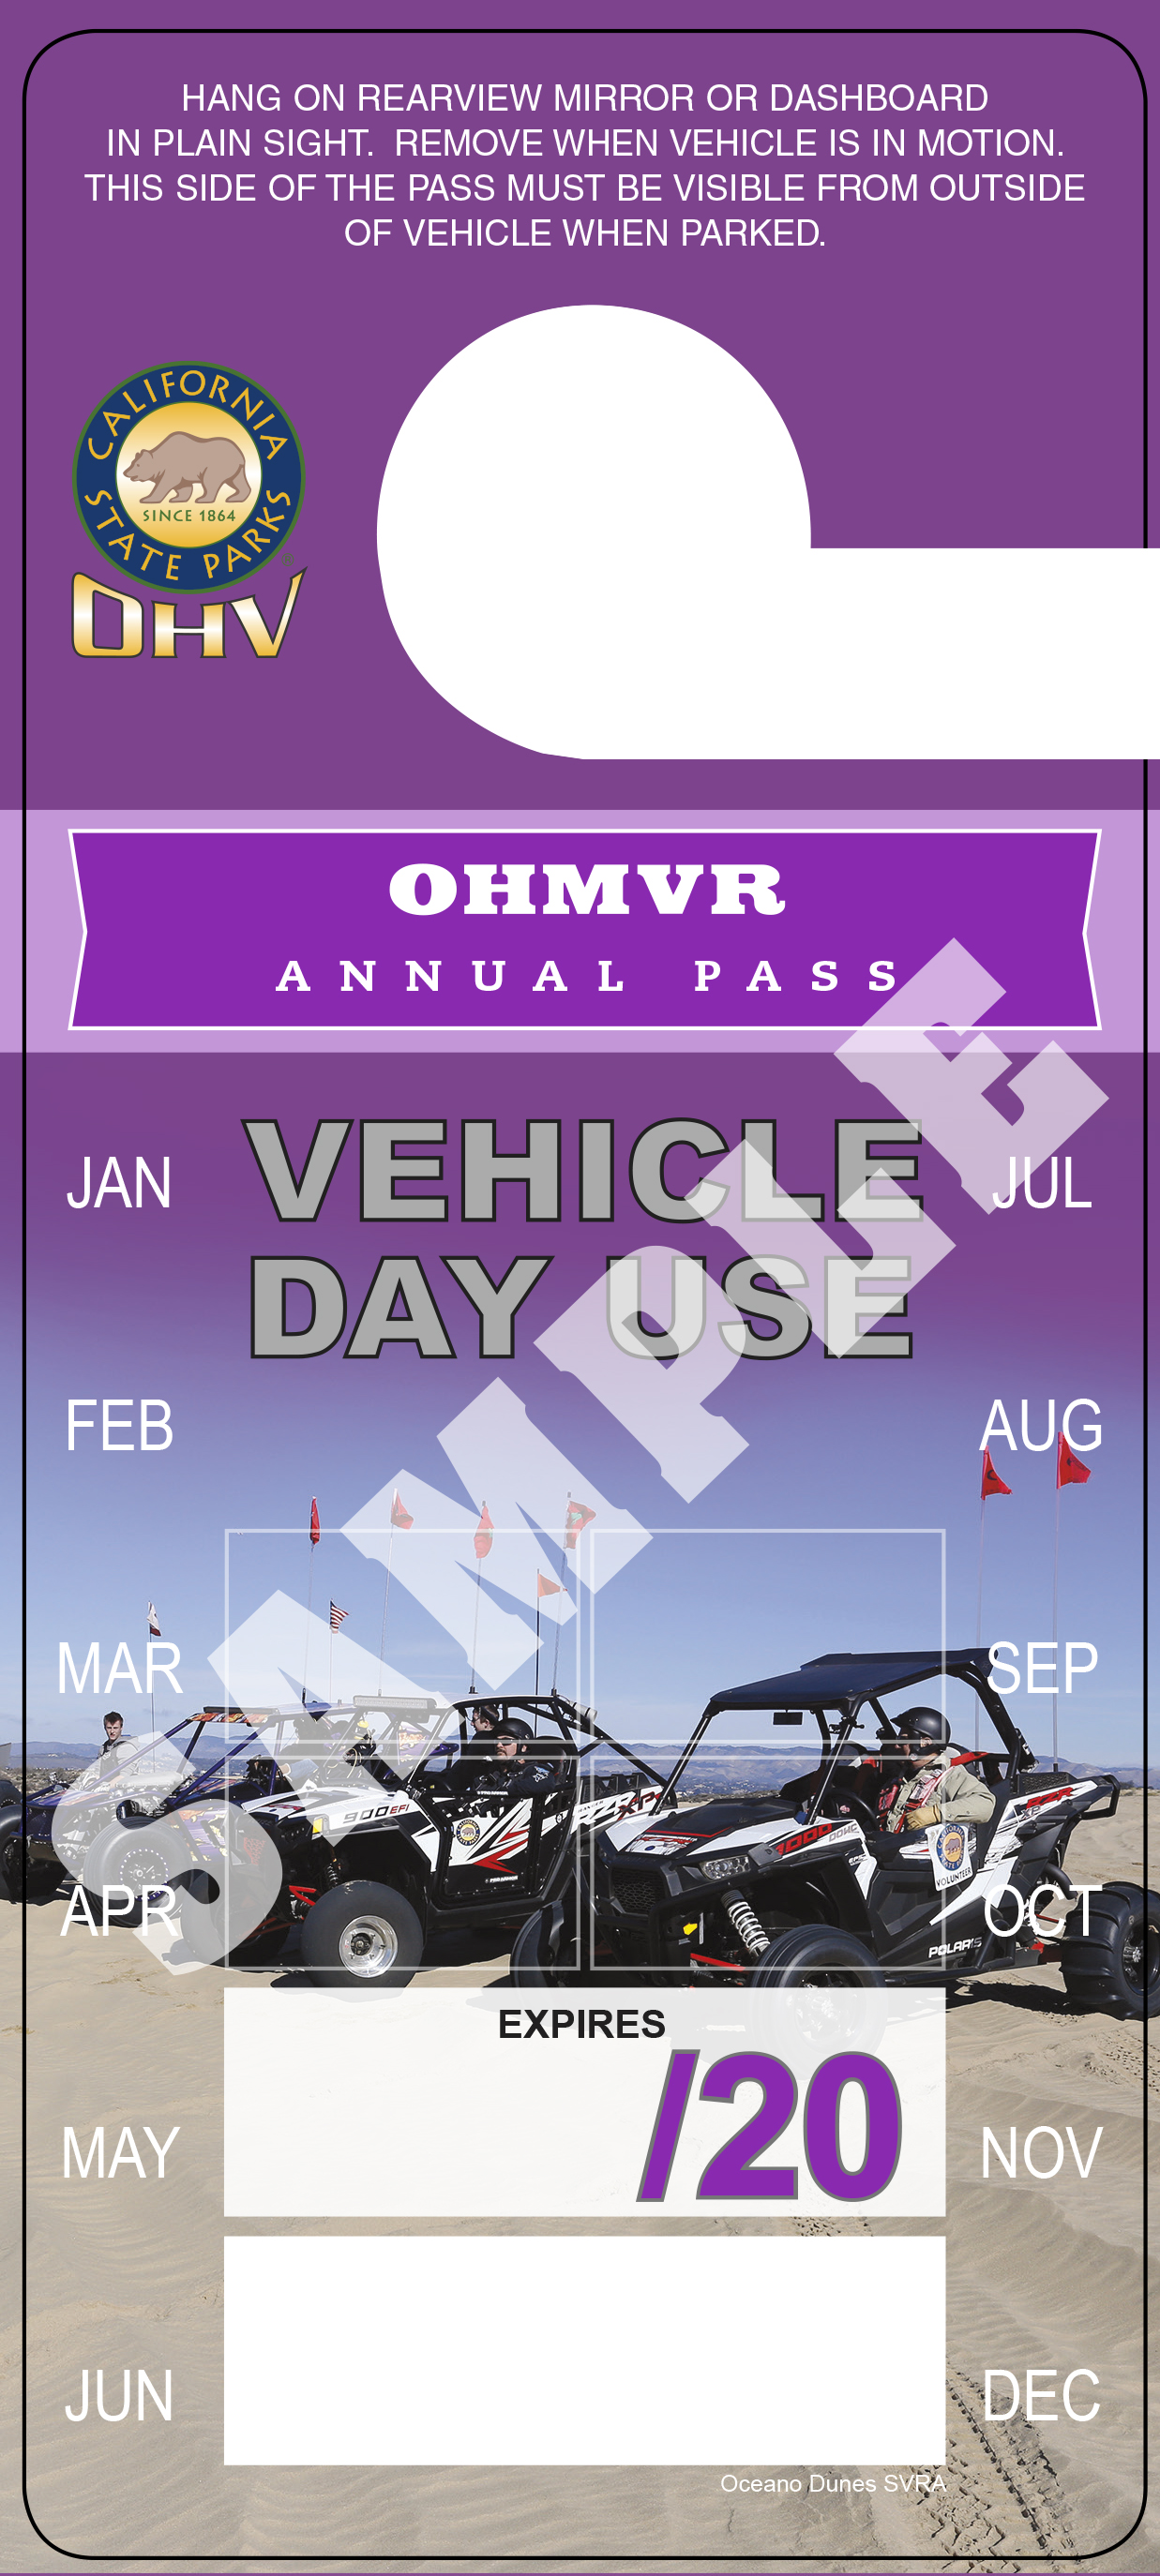 Annual OHV Vehicle Pass image